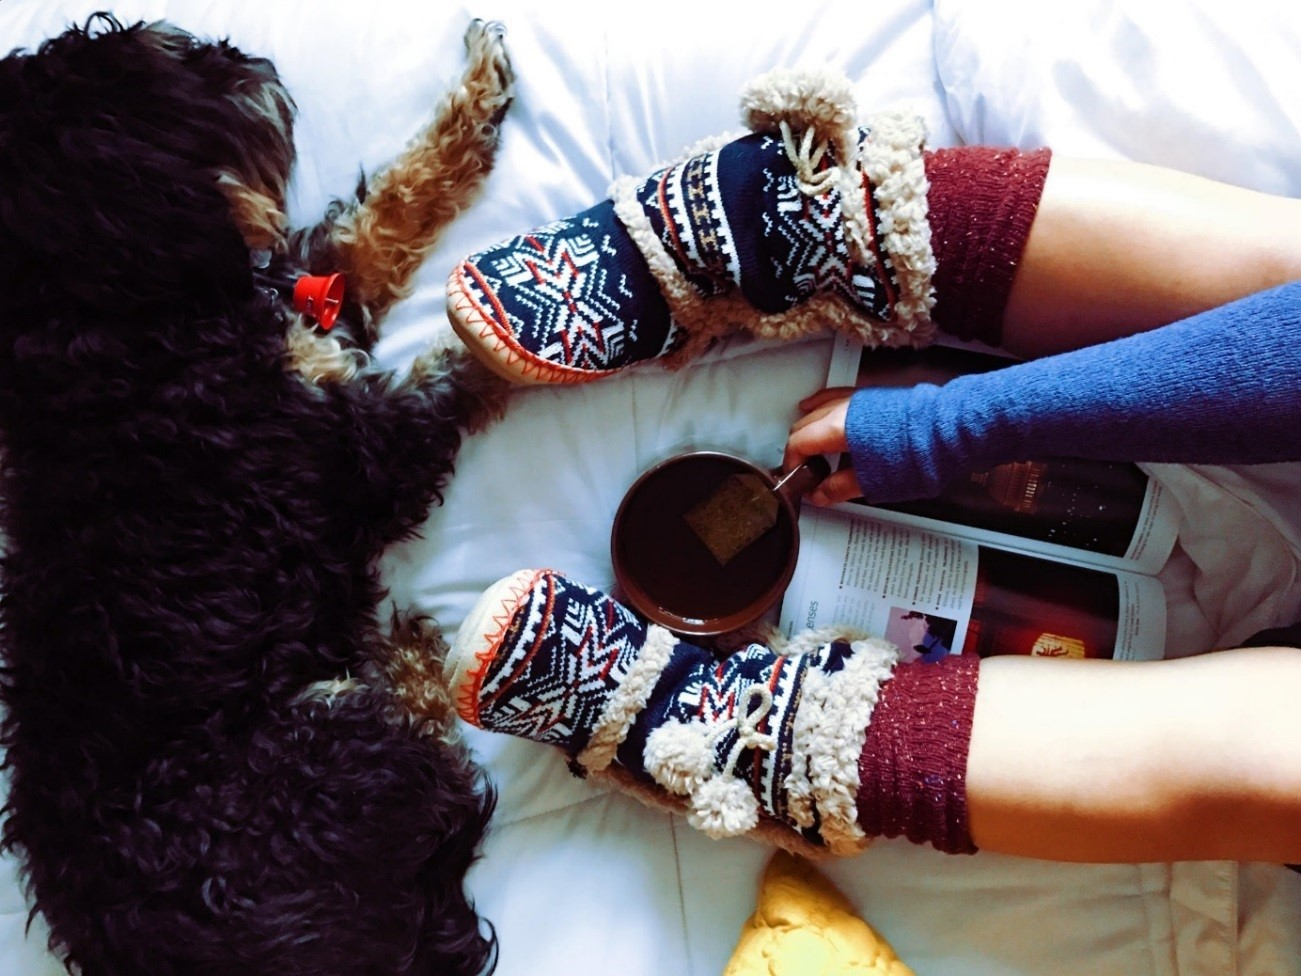 5 tips to keep your feet warm during winter